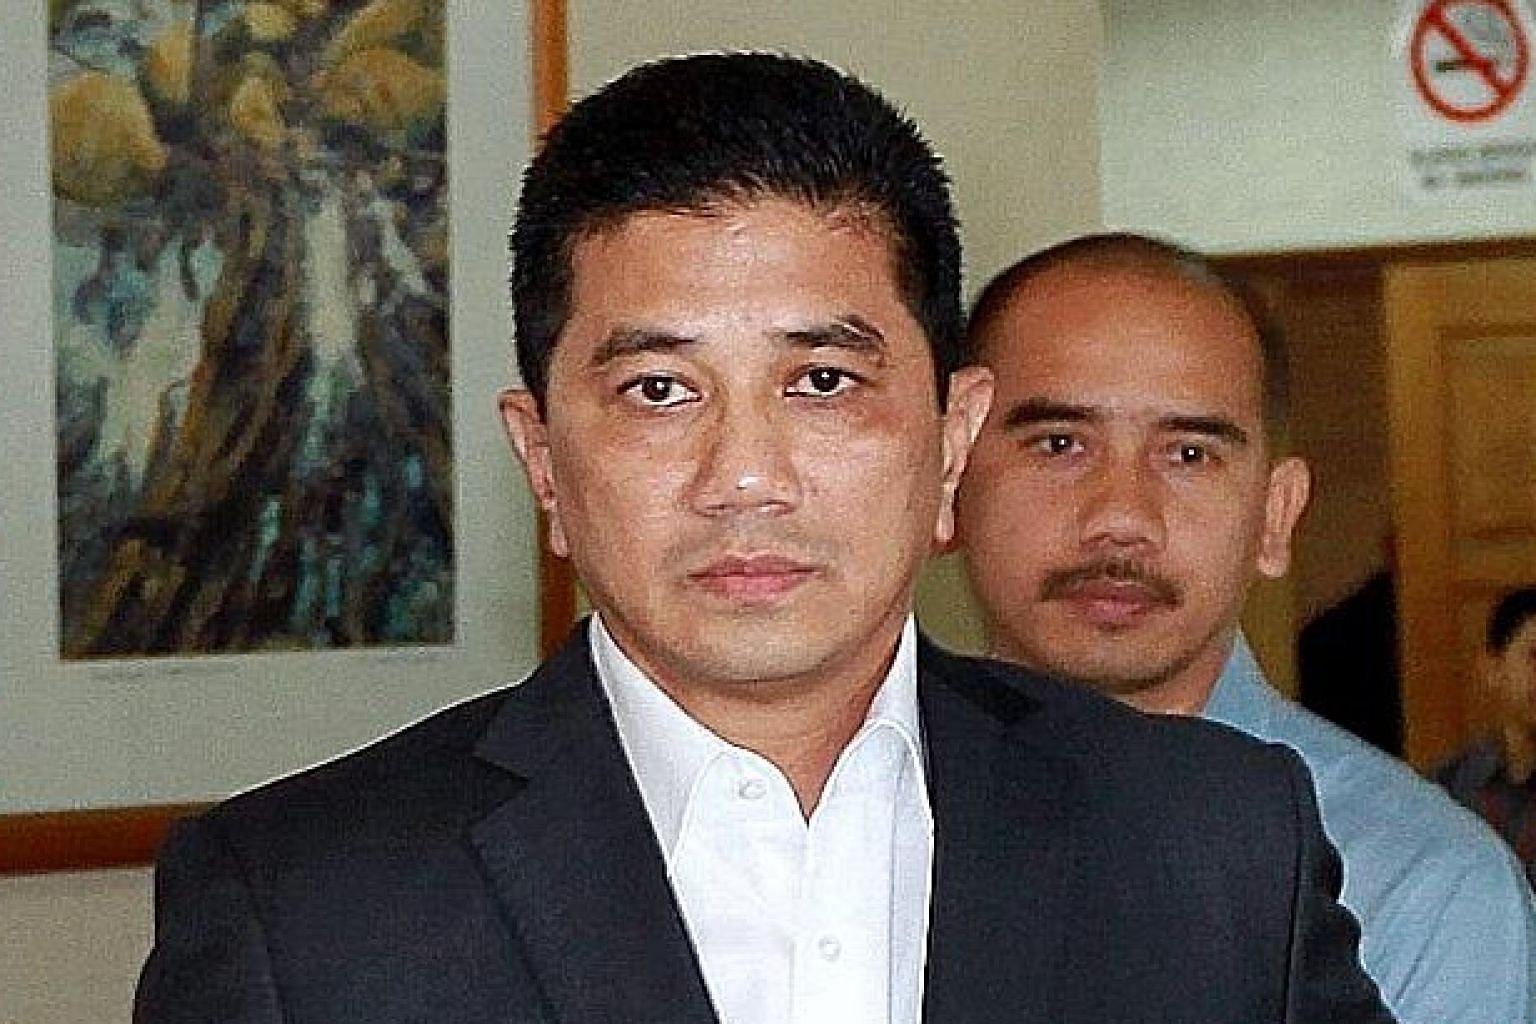 PKR leader Azmin Ali is Chief Minister of Selangor despite PAS holding the same number of seats in the state assembly.